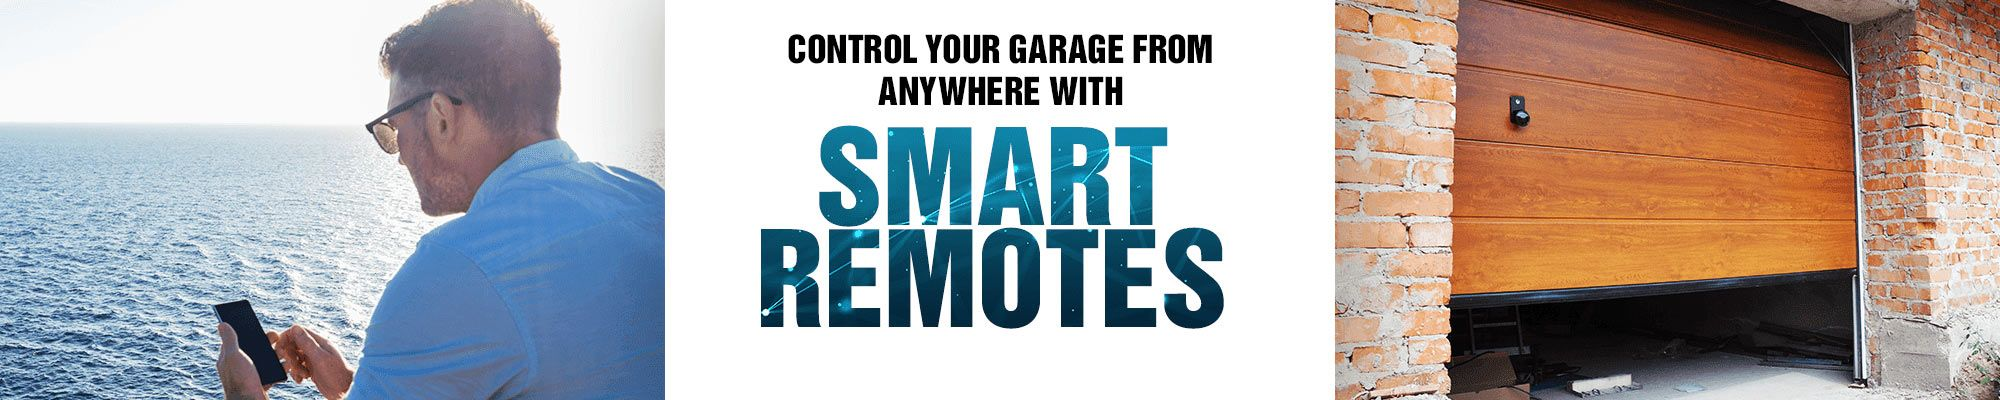 Control our Garage from Anywher with Smart Remotes